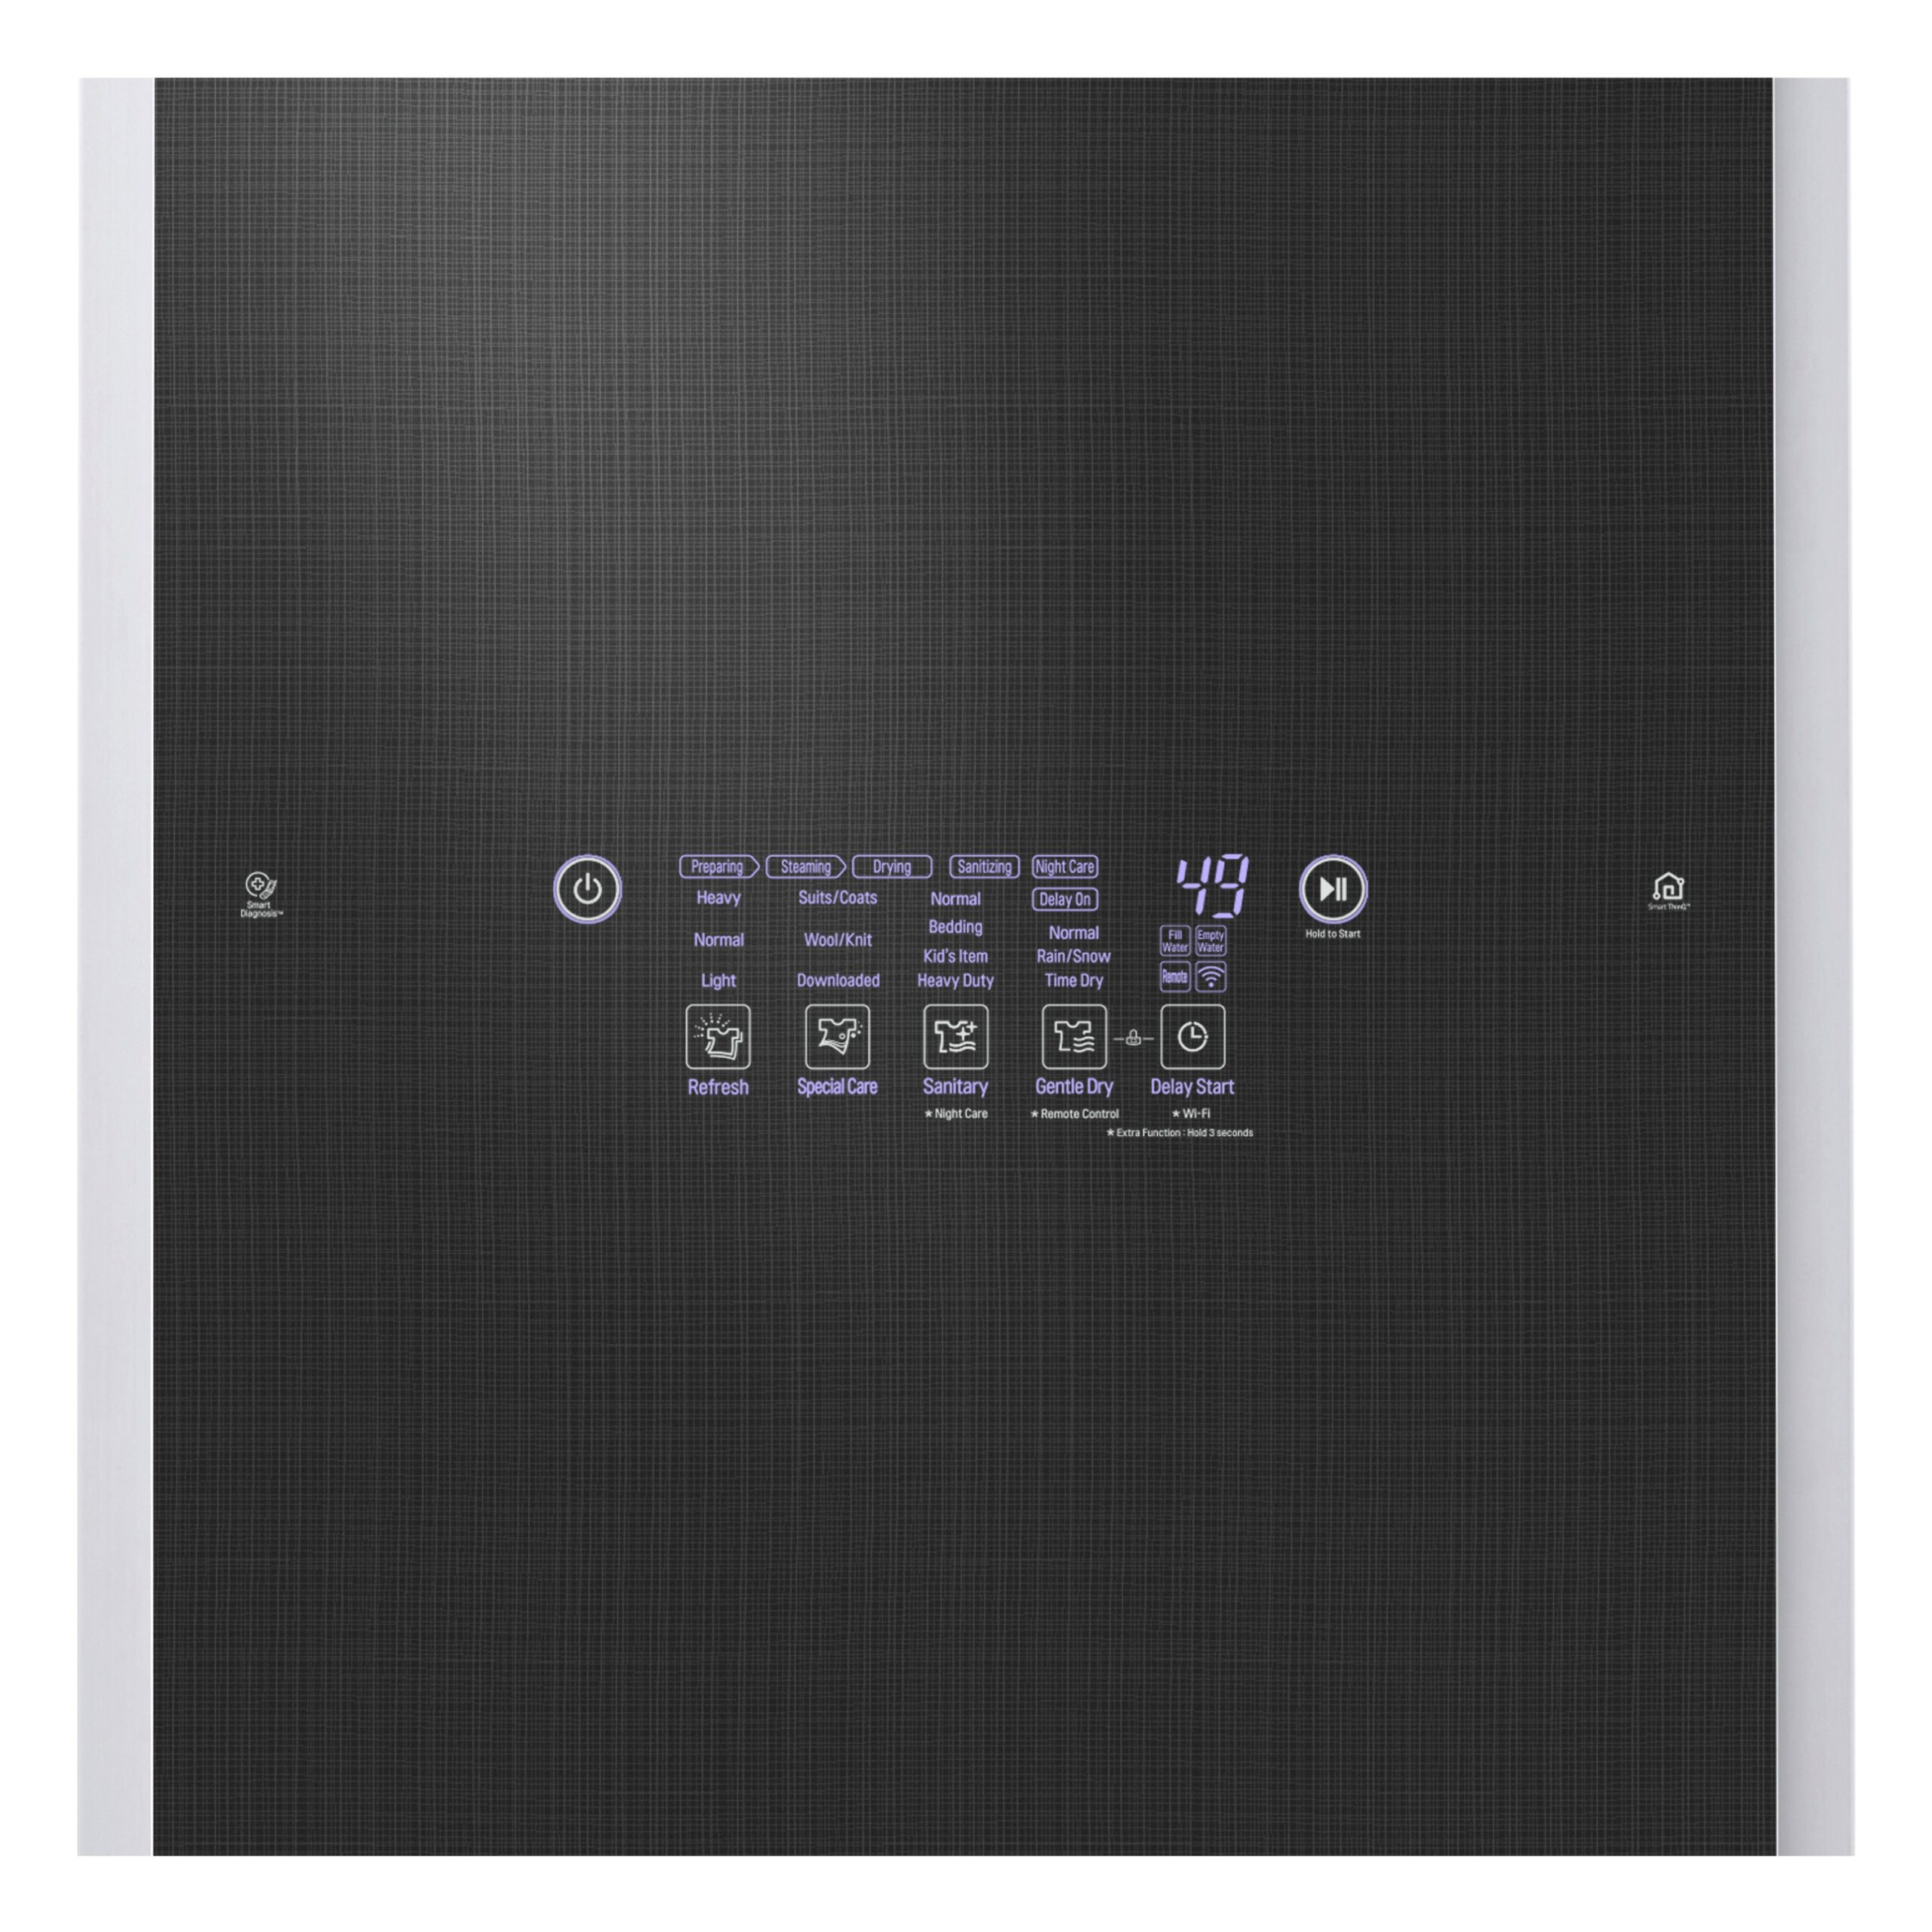 A close-up of LG Styler's exterior control panel